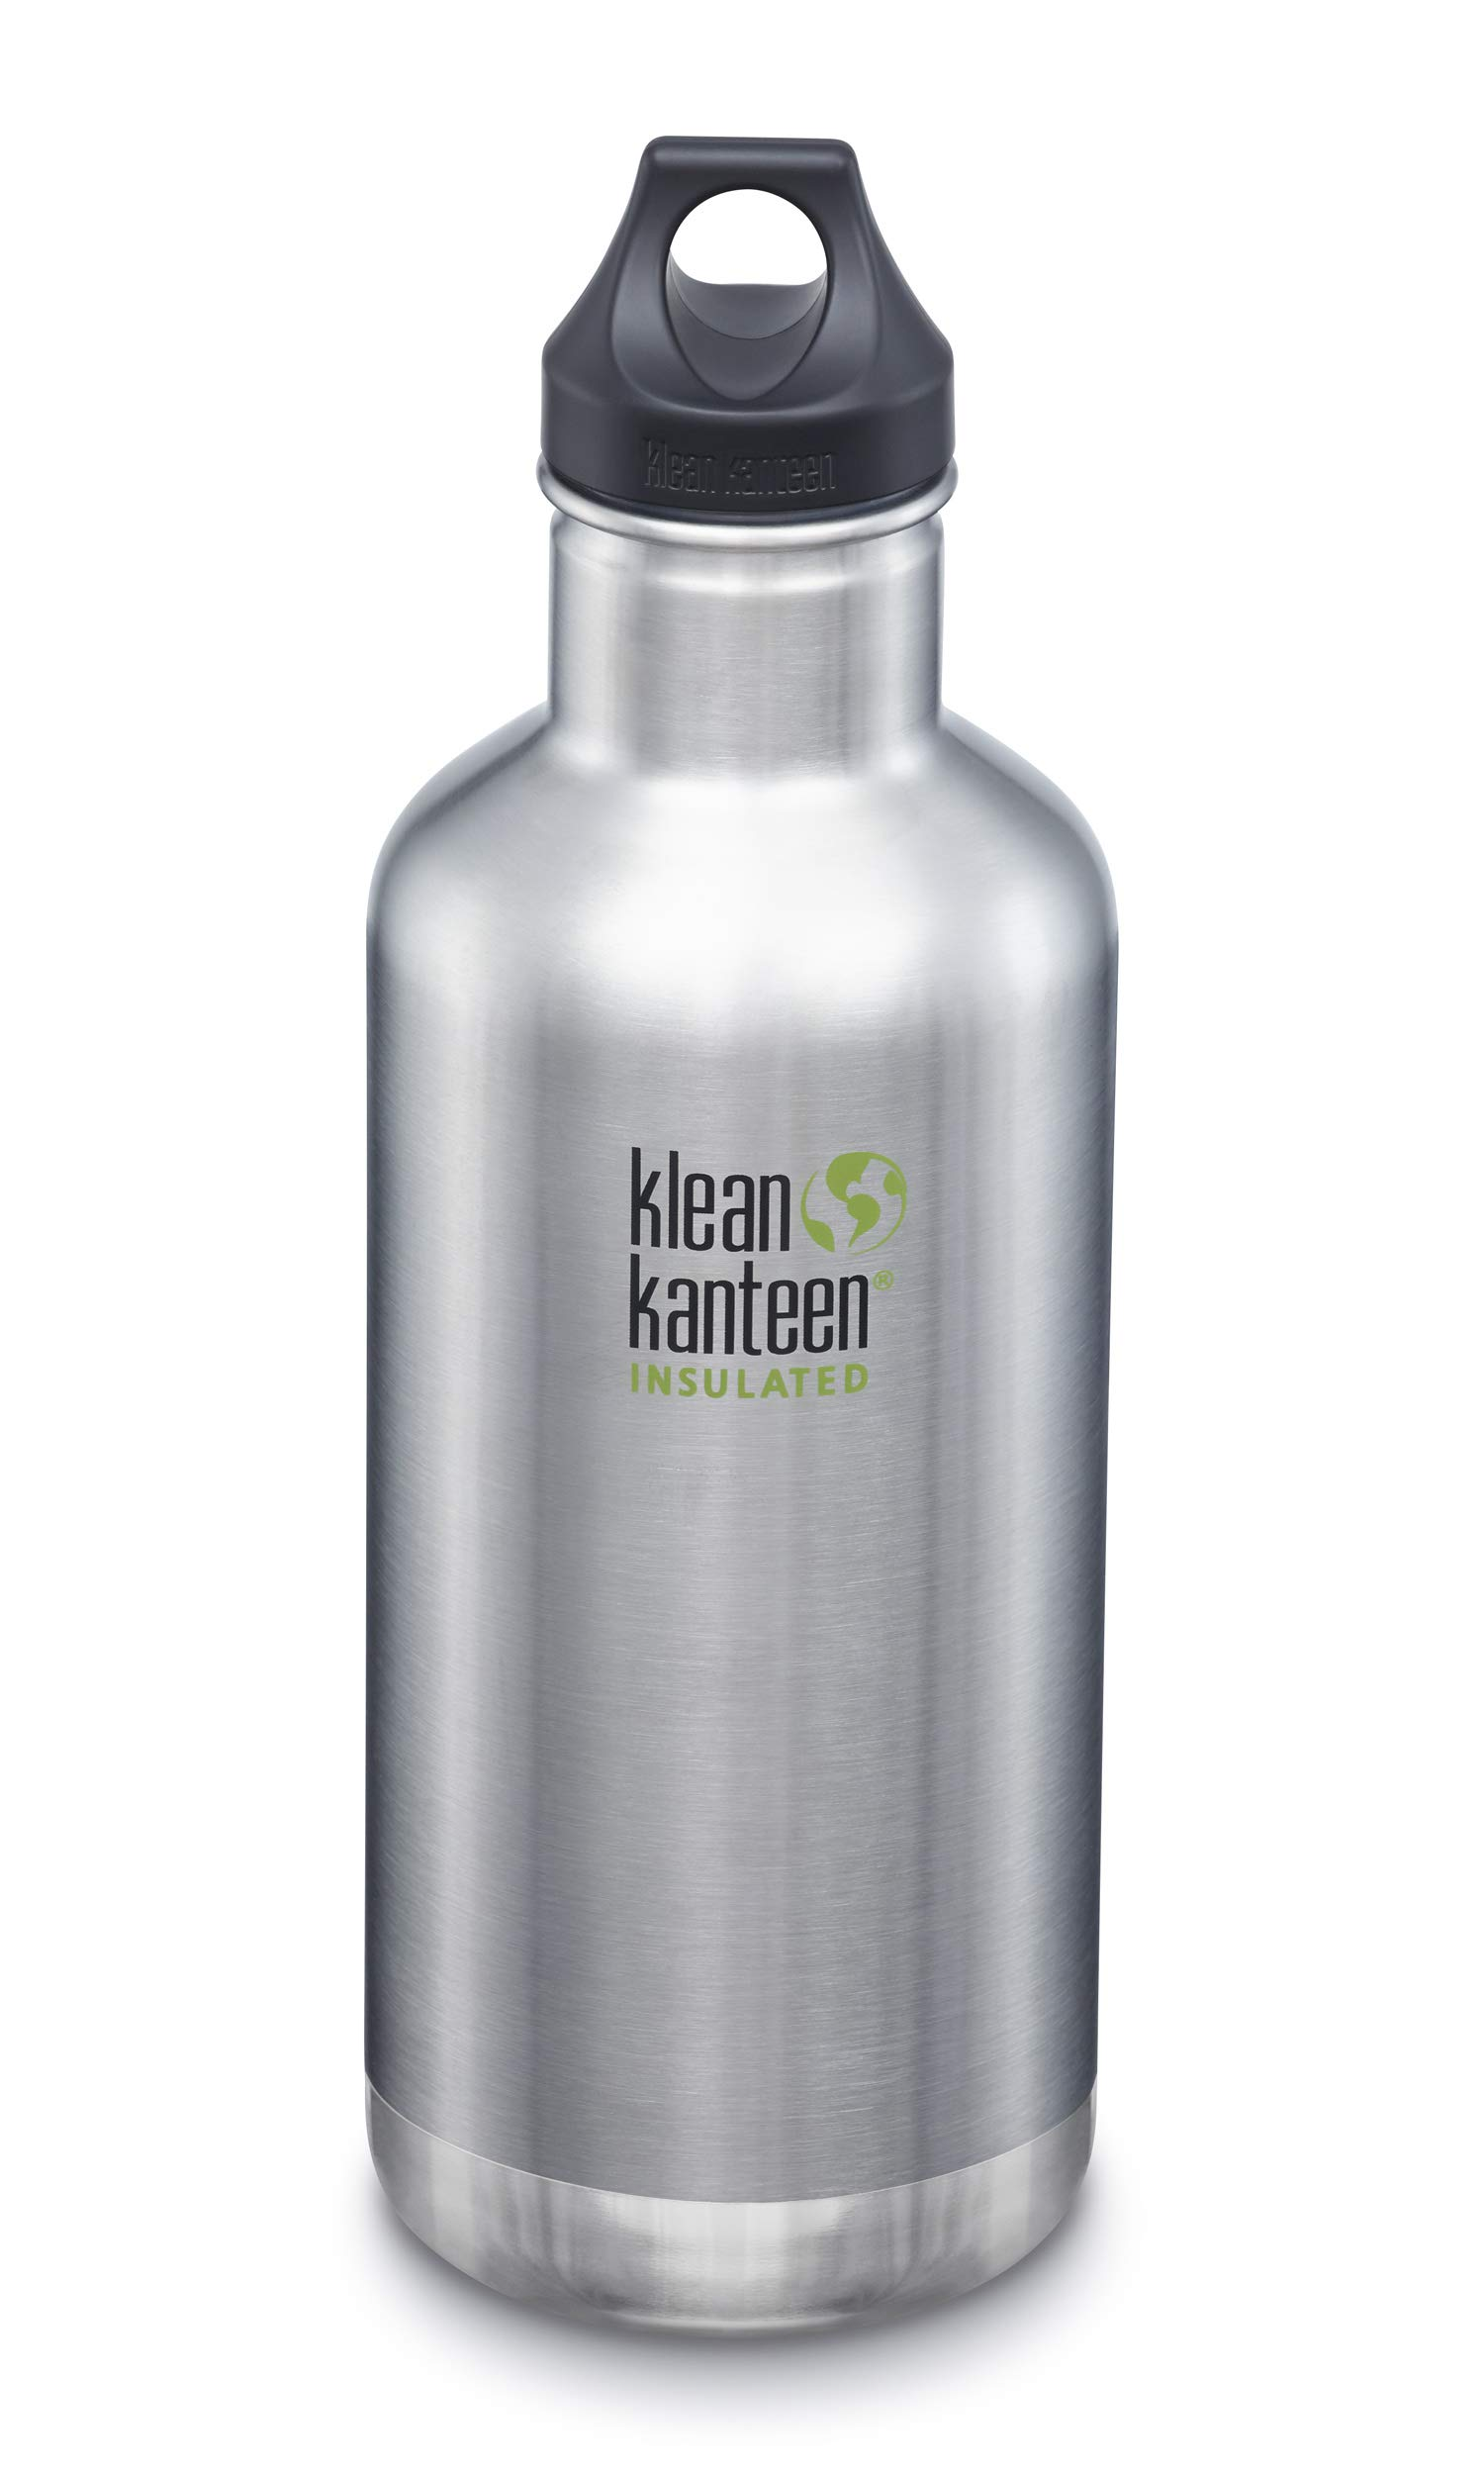 Klean Kanteen Classic Stainless Steel Double Wall Insulated Water Bottle with Loop Cap